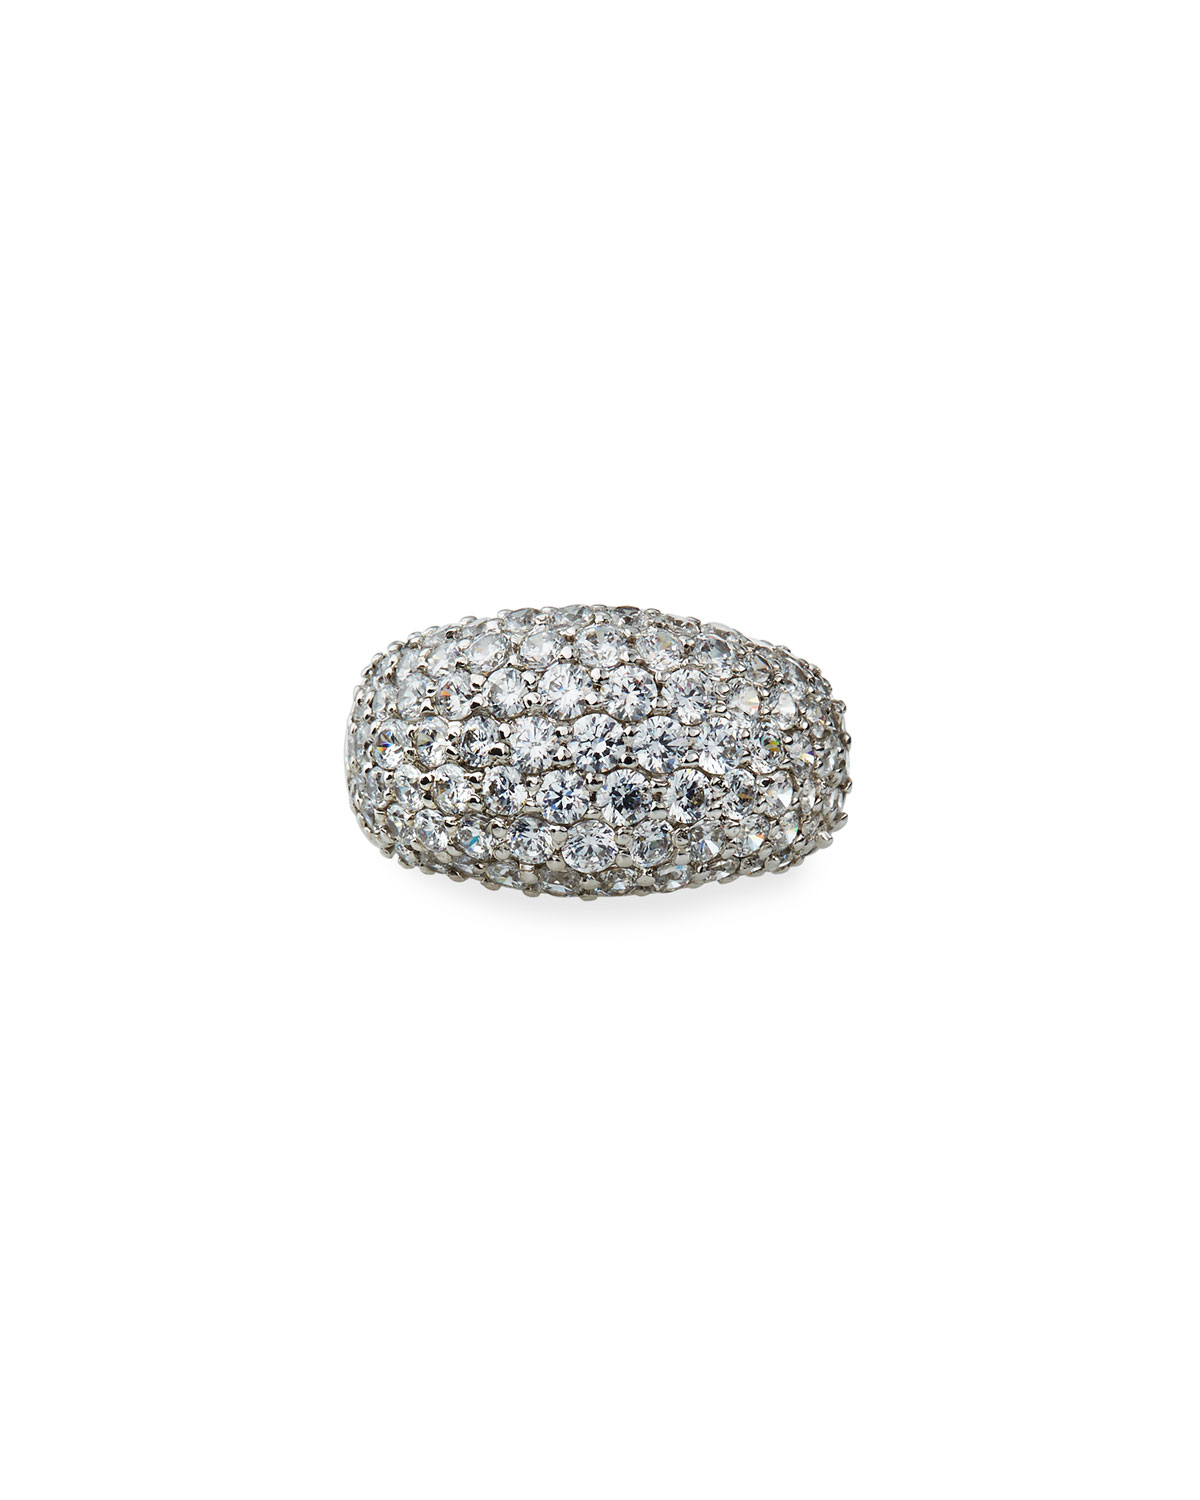 4.25 TCW Cubic Zirconia Pave Dome Ring